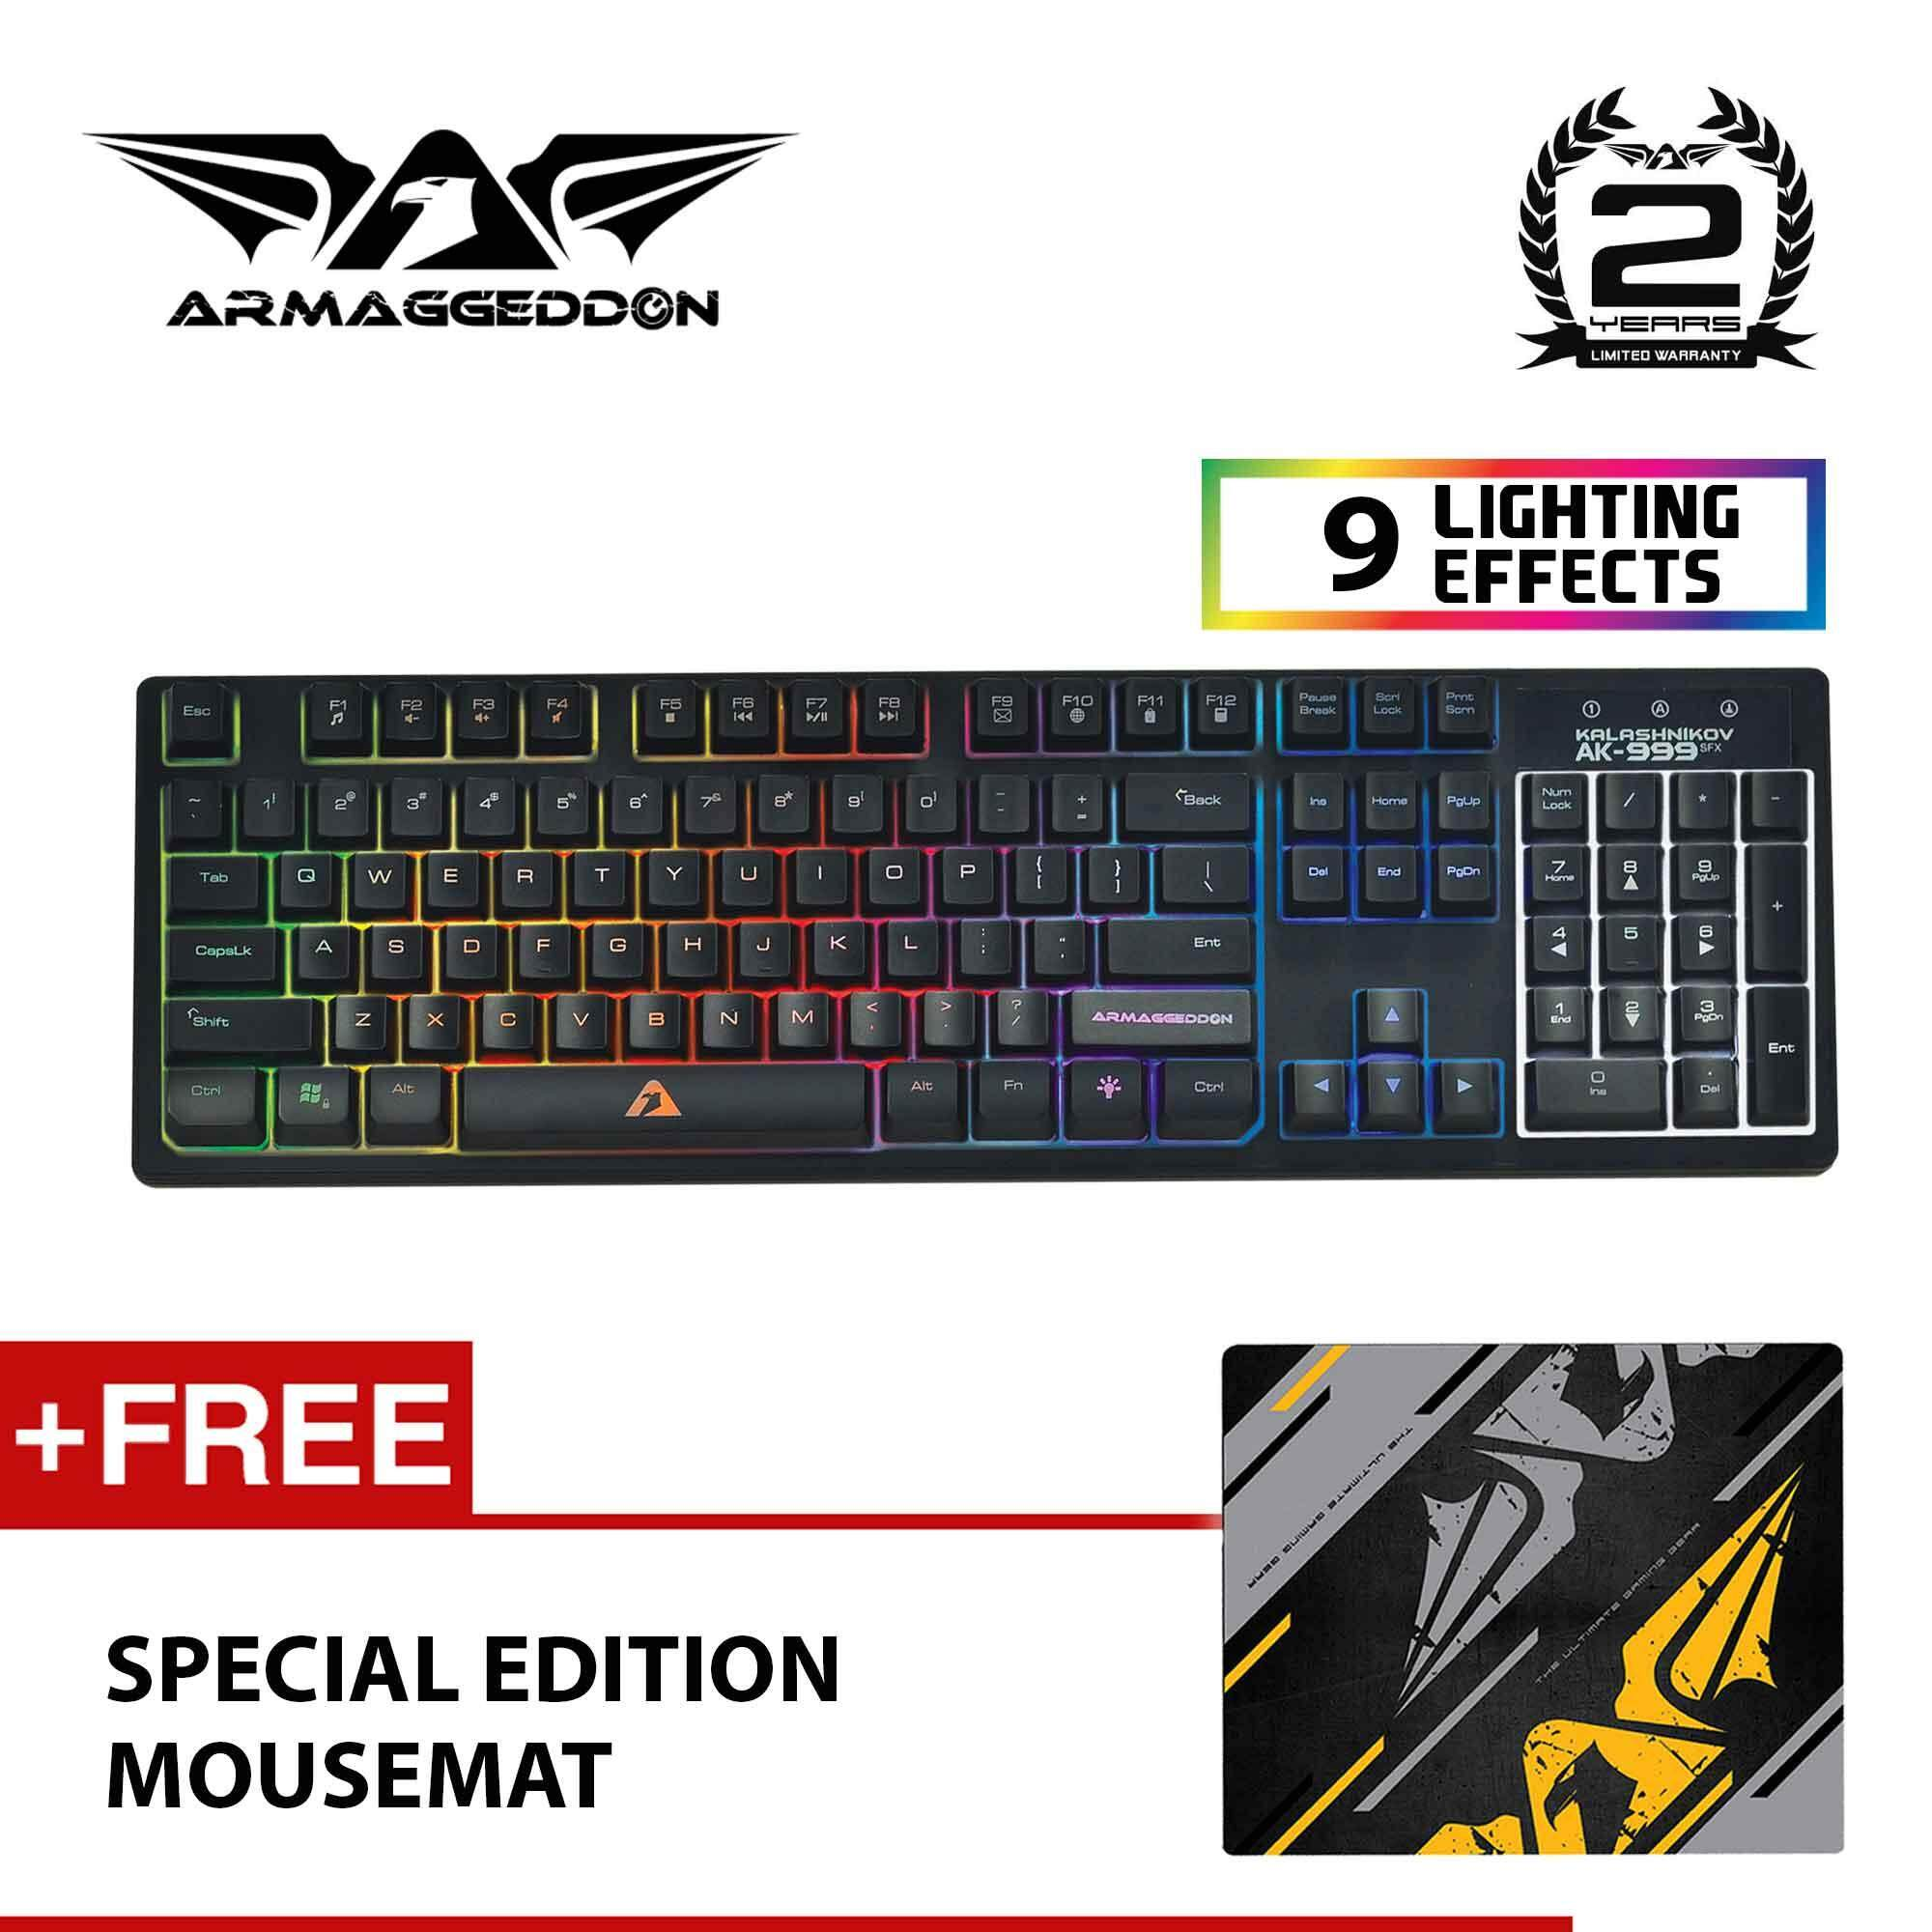 Armaggeddon AK-999sFX Spill Proof Gaming Keyboard Free Special Edition Mousemat Malaysia